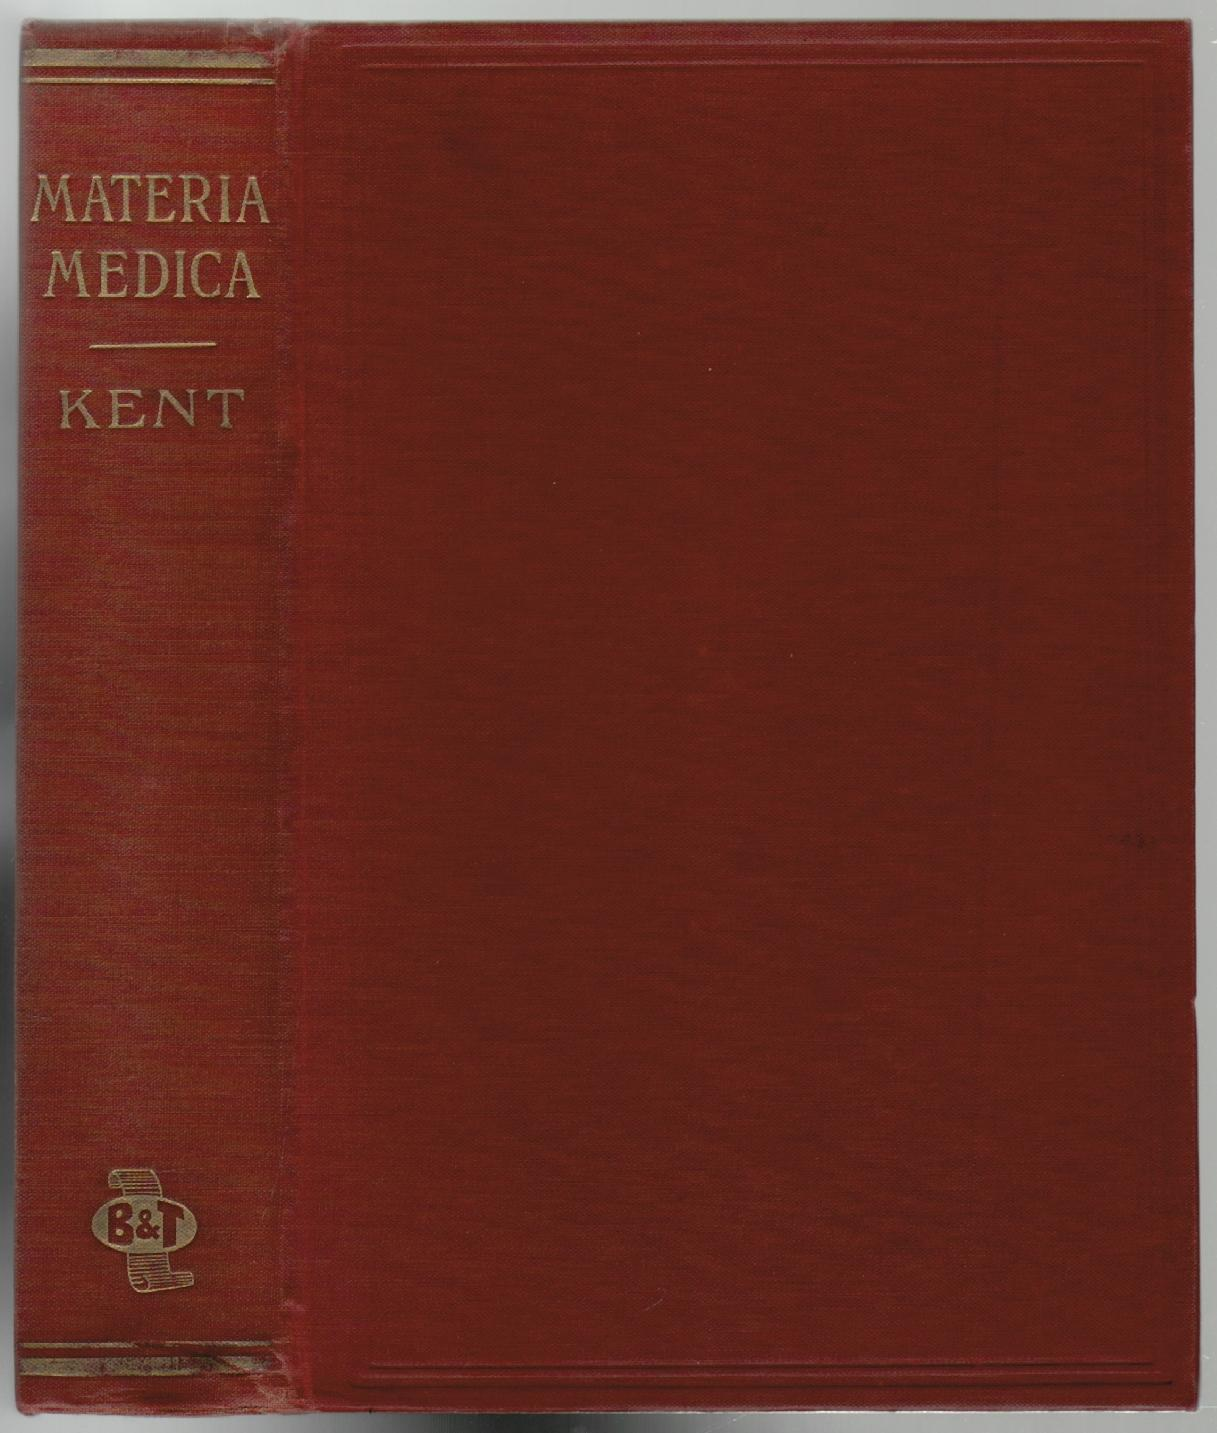 KENT S COMPARATIVE REPERTORY OF THE HOMEOPATHIC MATERIA MEDICA